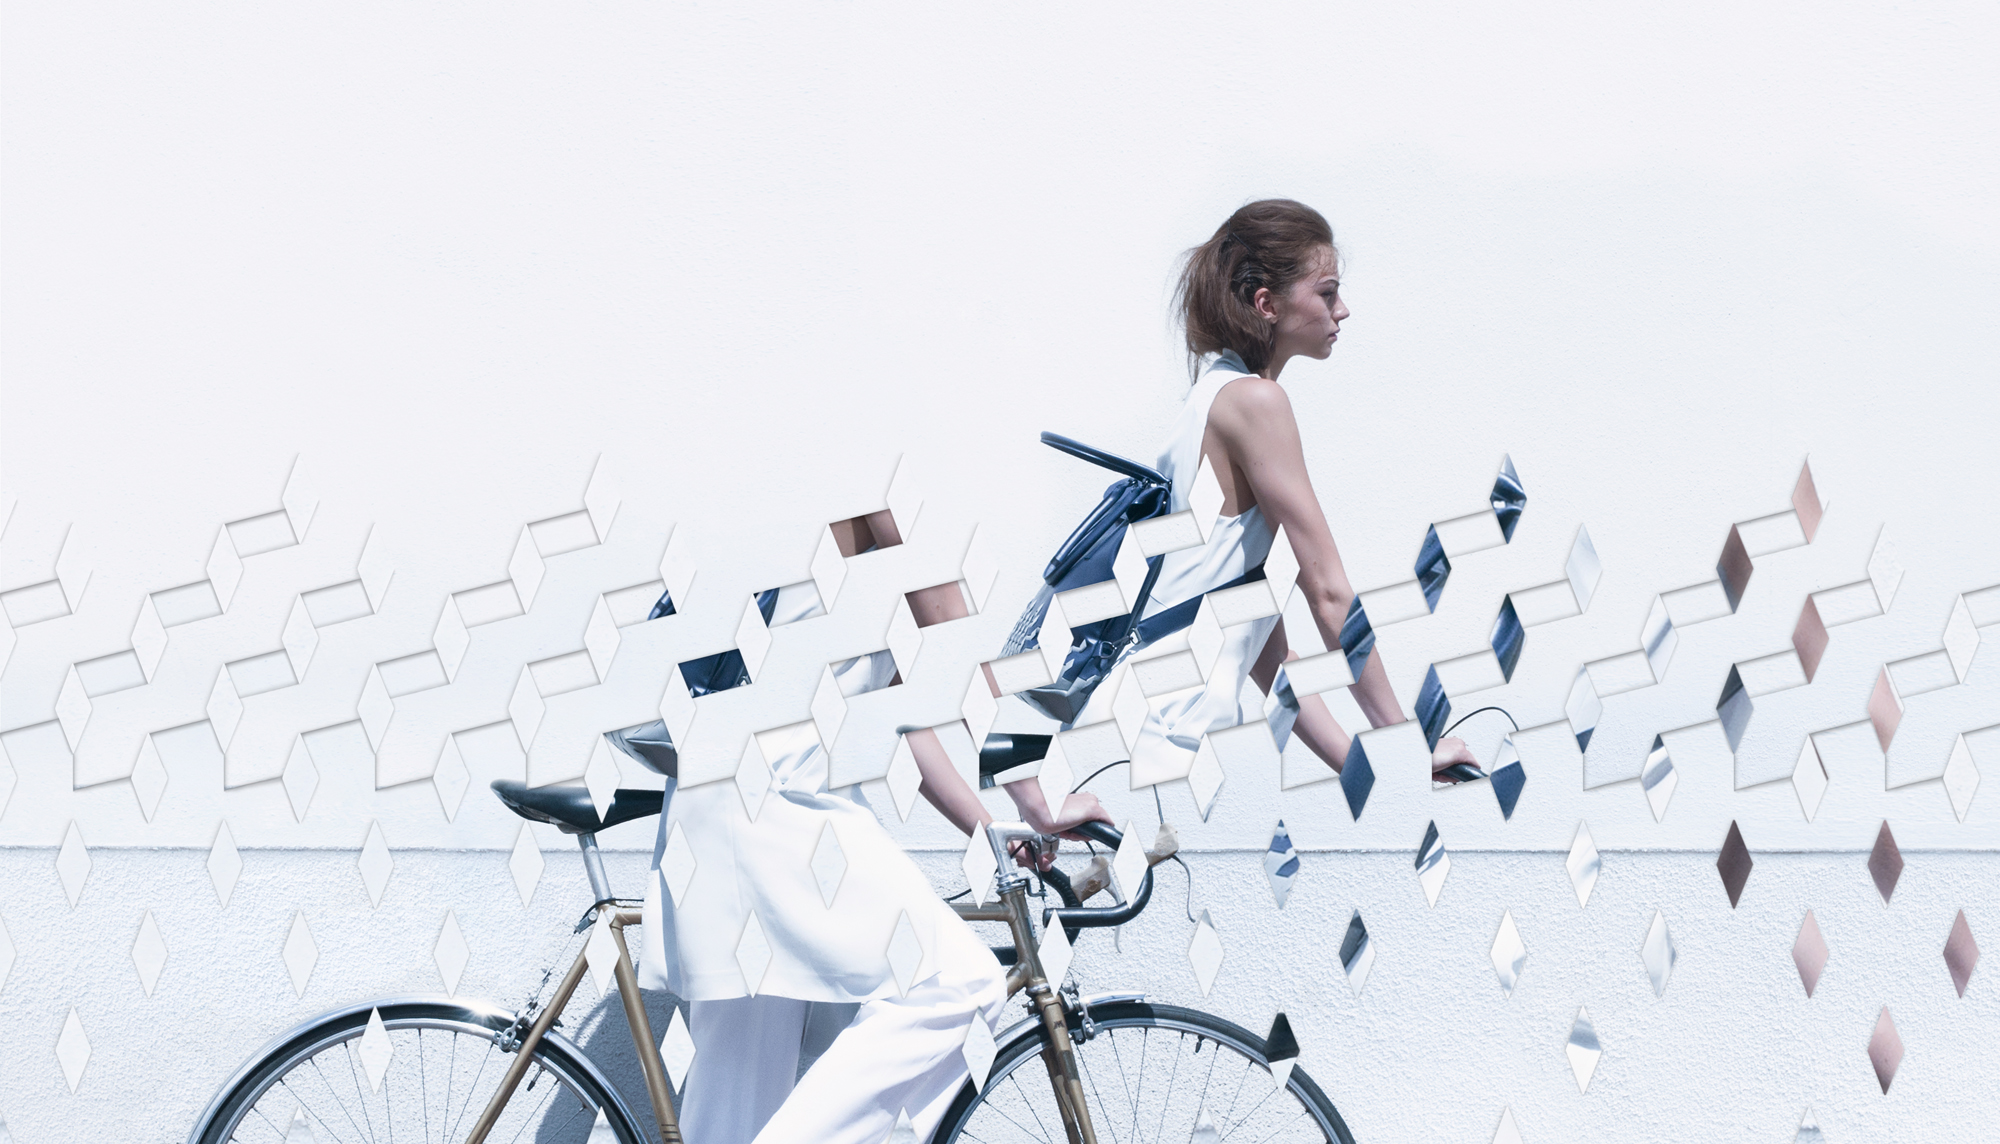 The cyclist_collection1_penelope16.jpg